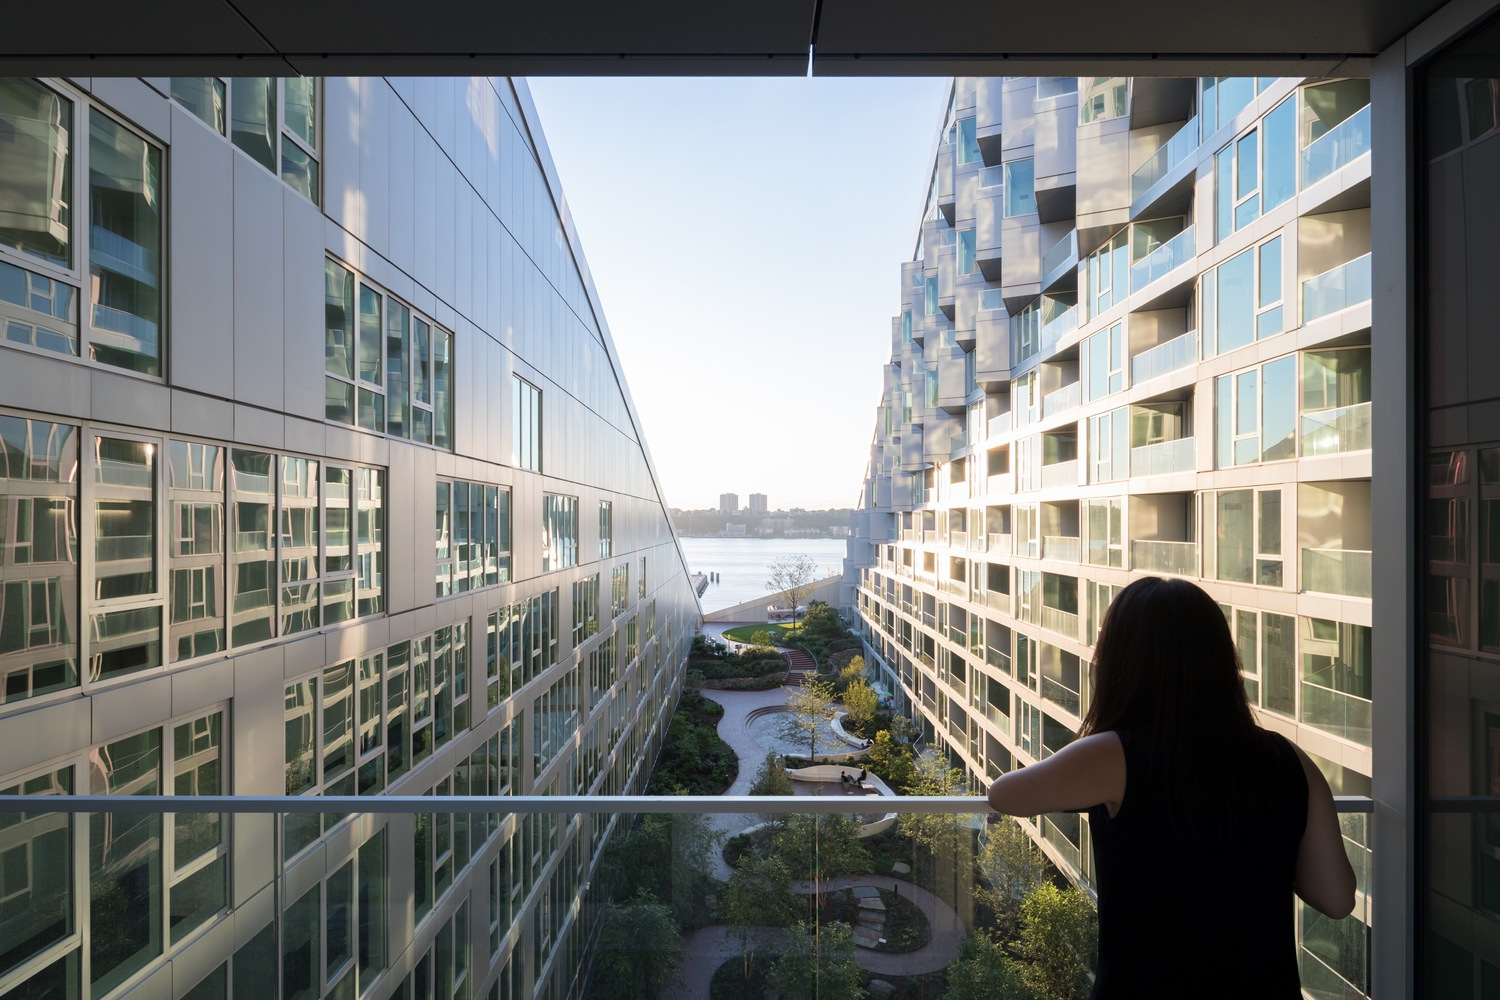 Aia Names The Best Housing Projects Of 2017 Via 57 West New York City